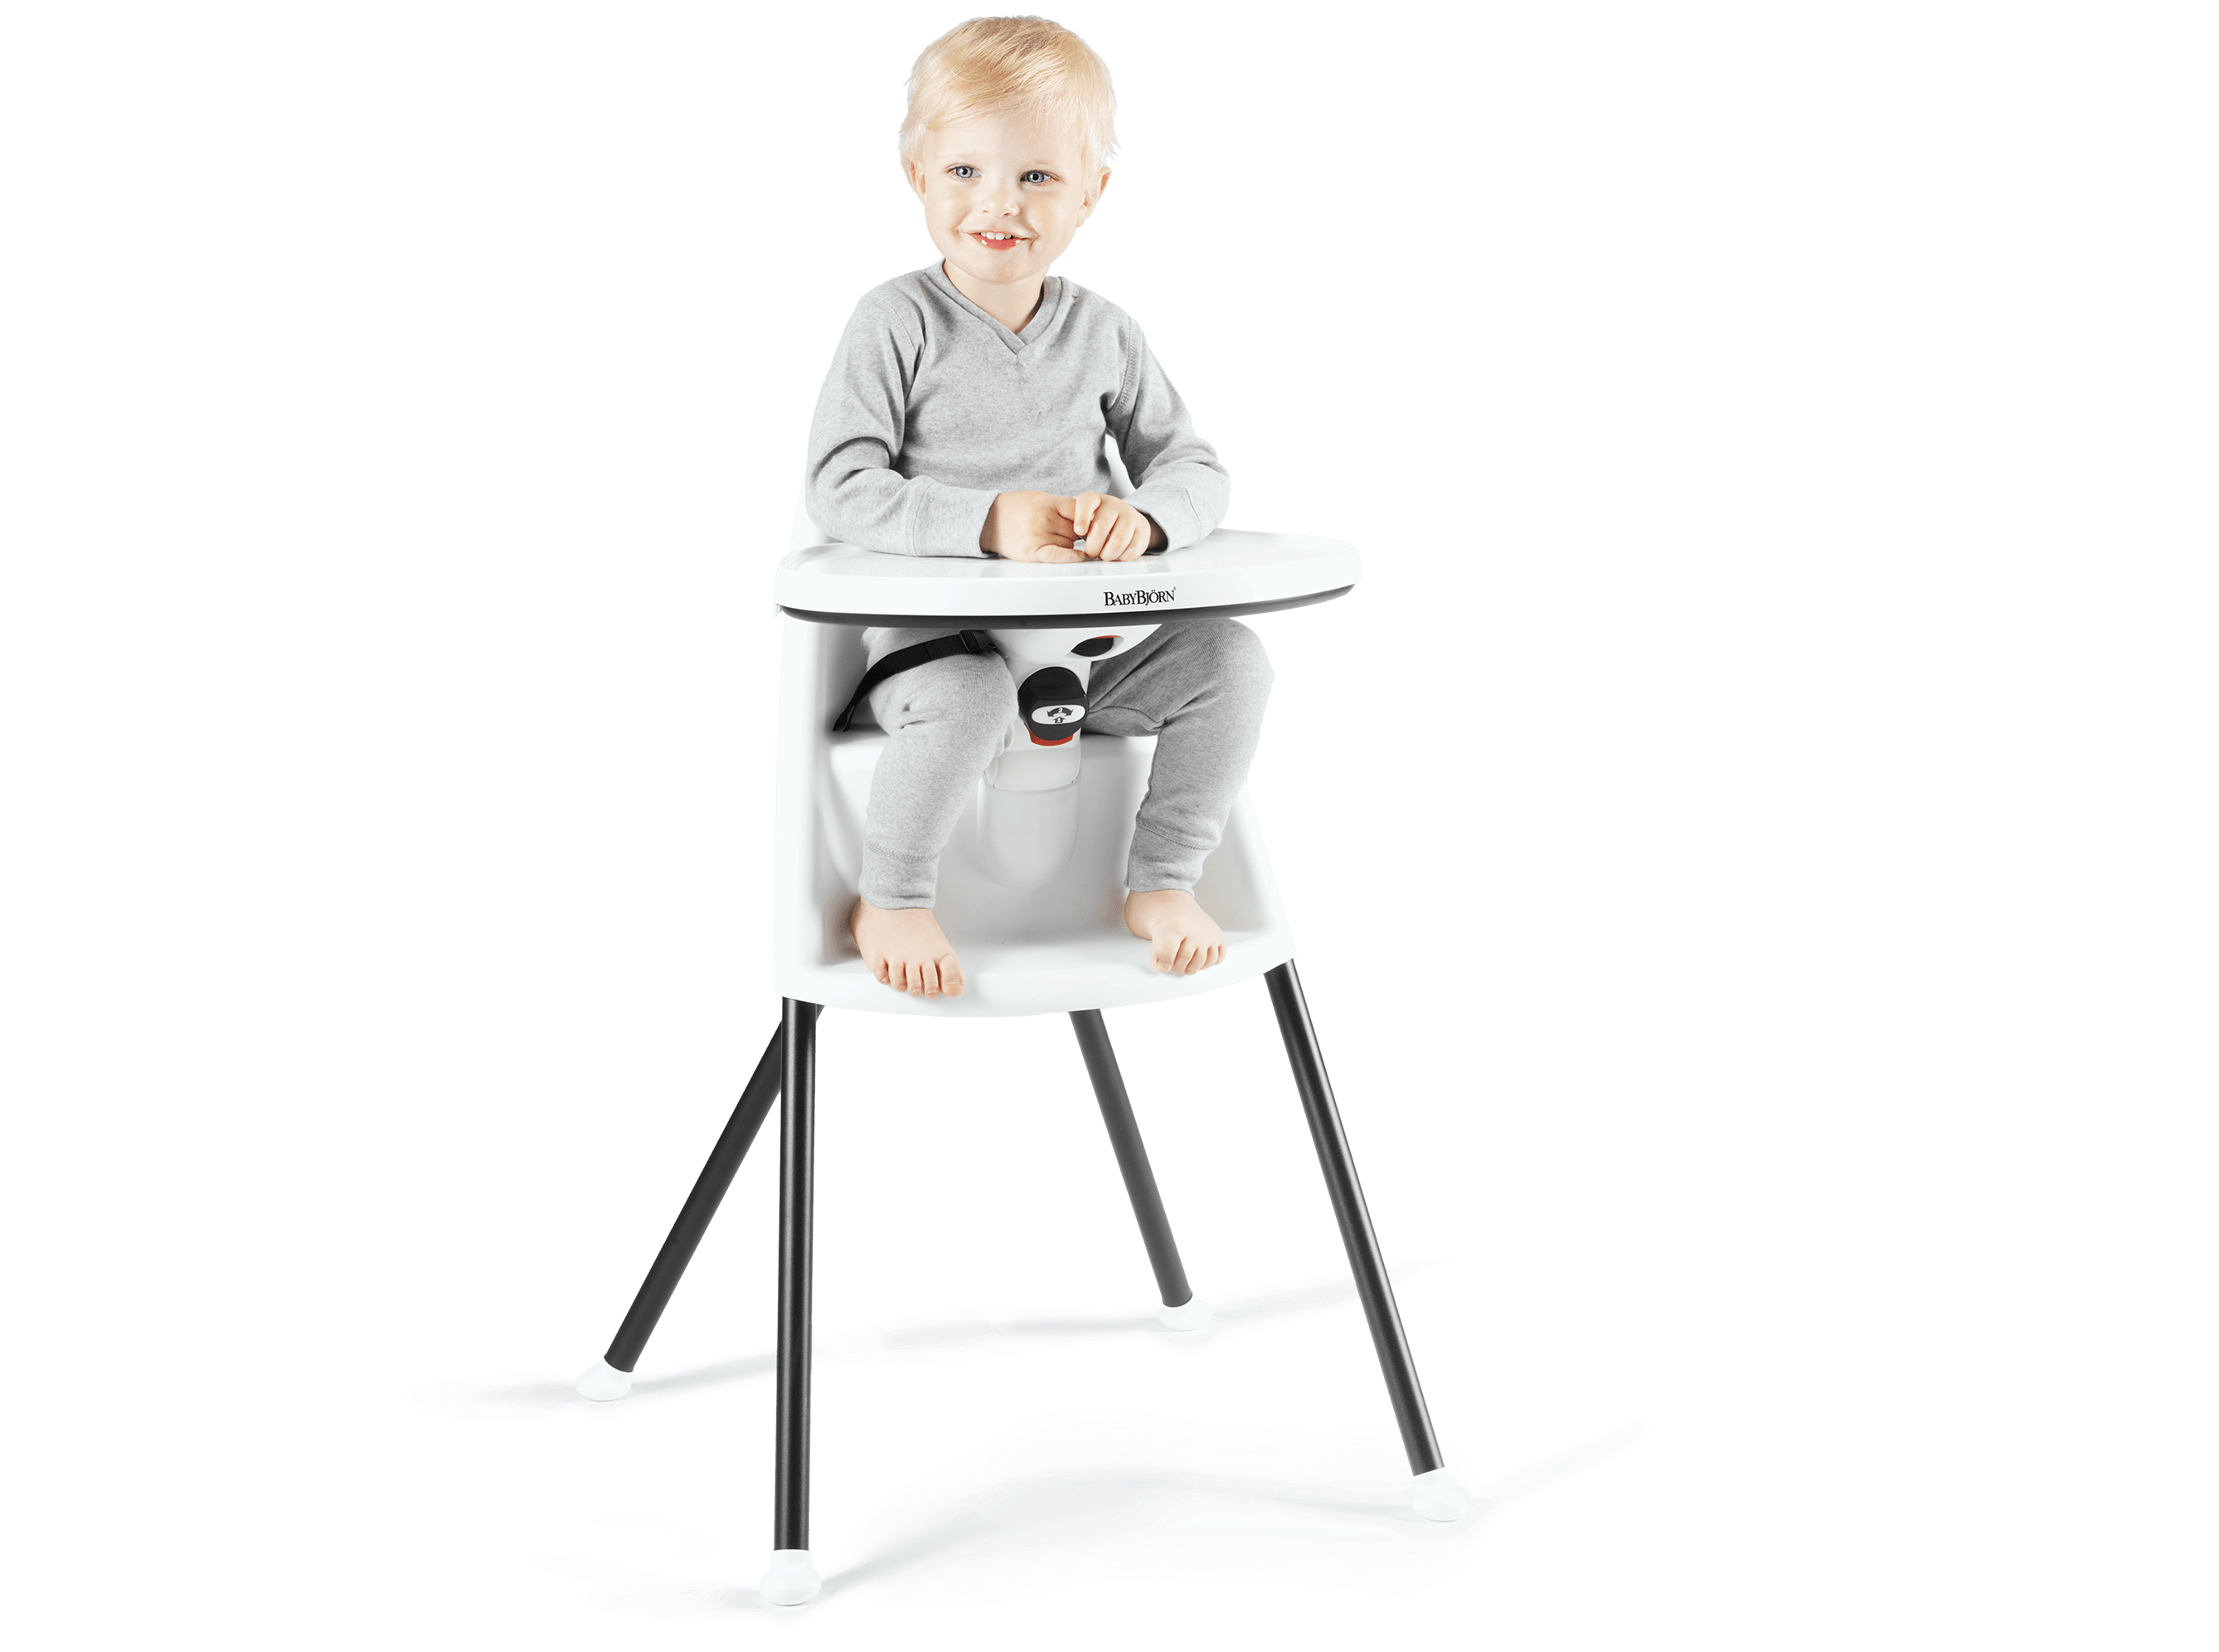 e8aade3c82f Infant high chair – safe   smart design